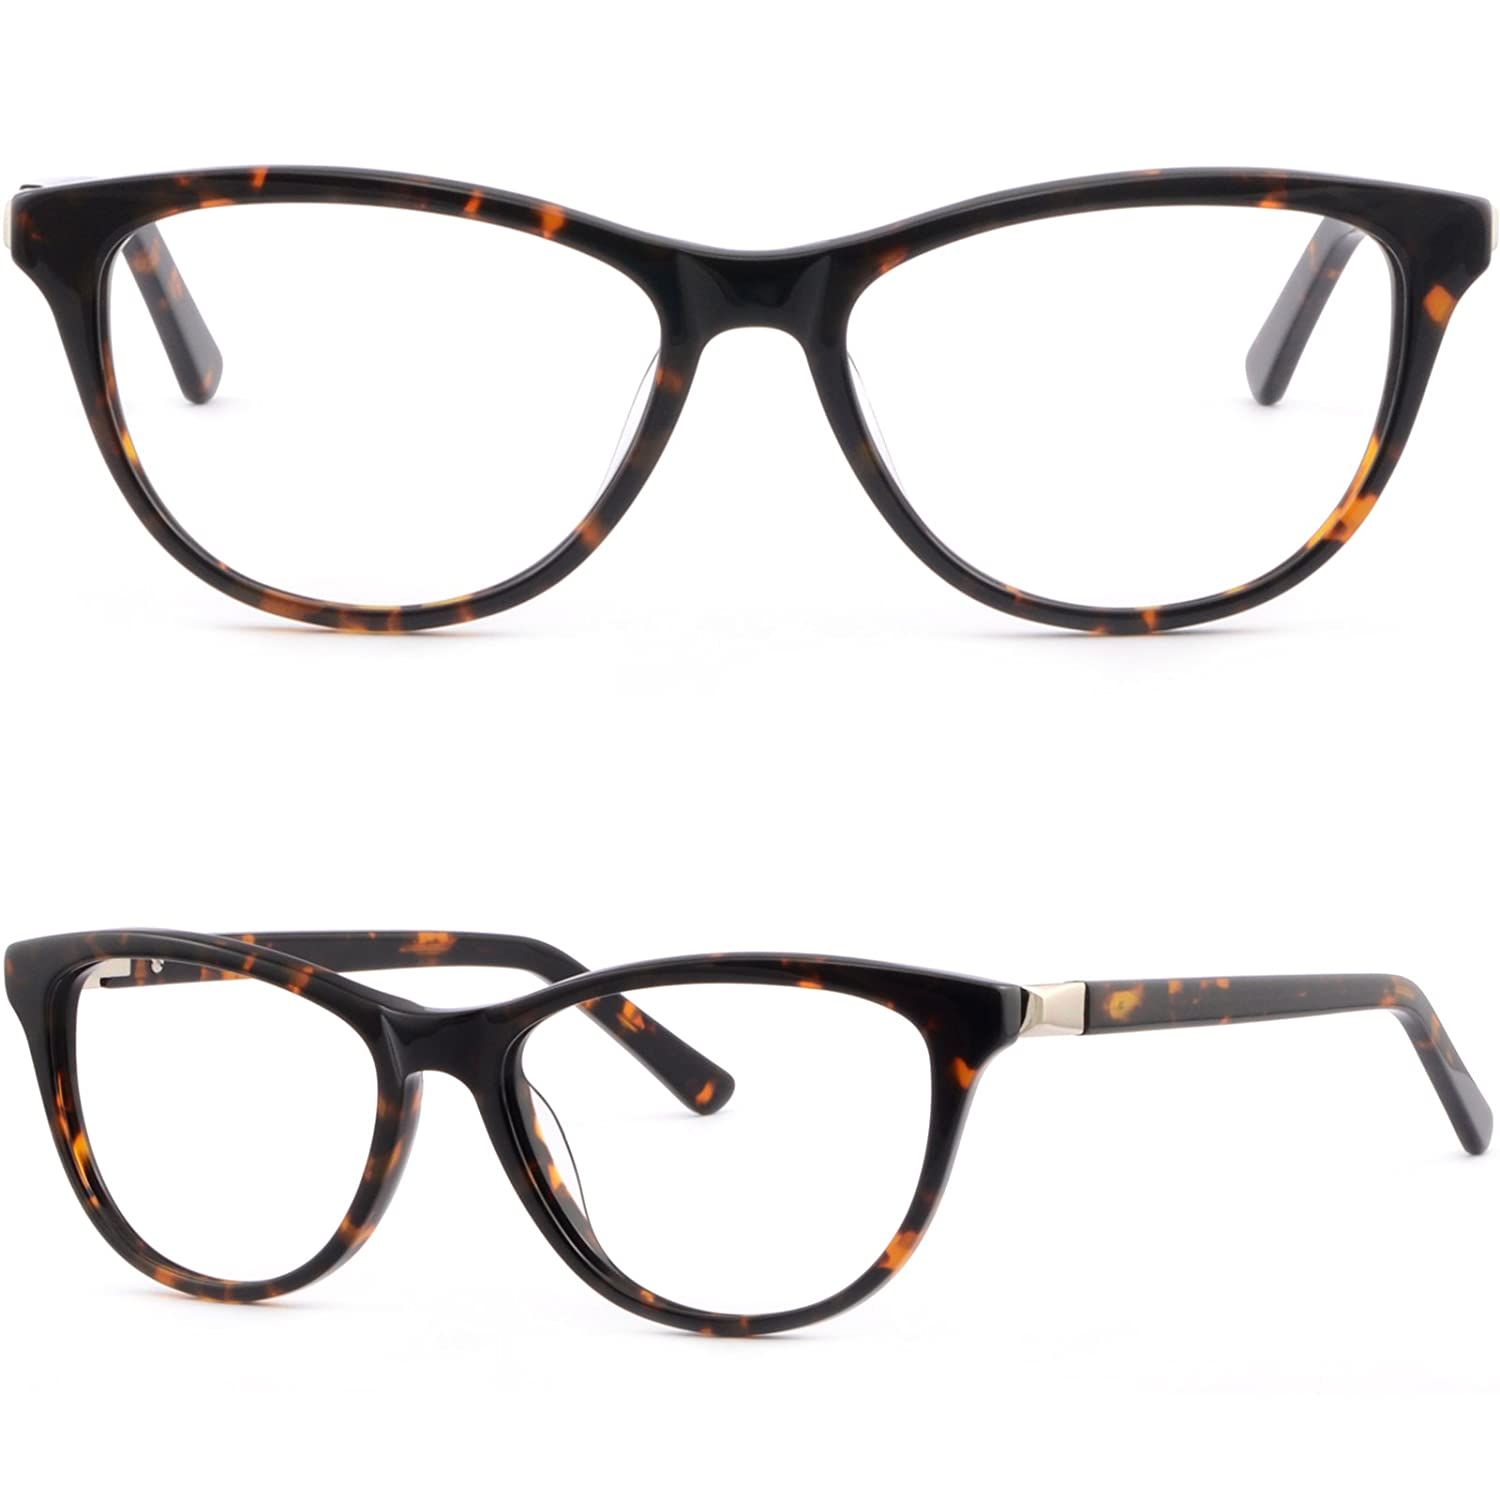 a8ffacec84 Amazon.com  Womens Cat-eye Acetate Frame Spring Hinges Tortoiseshell   Clothing